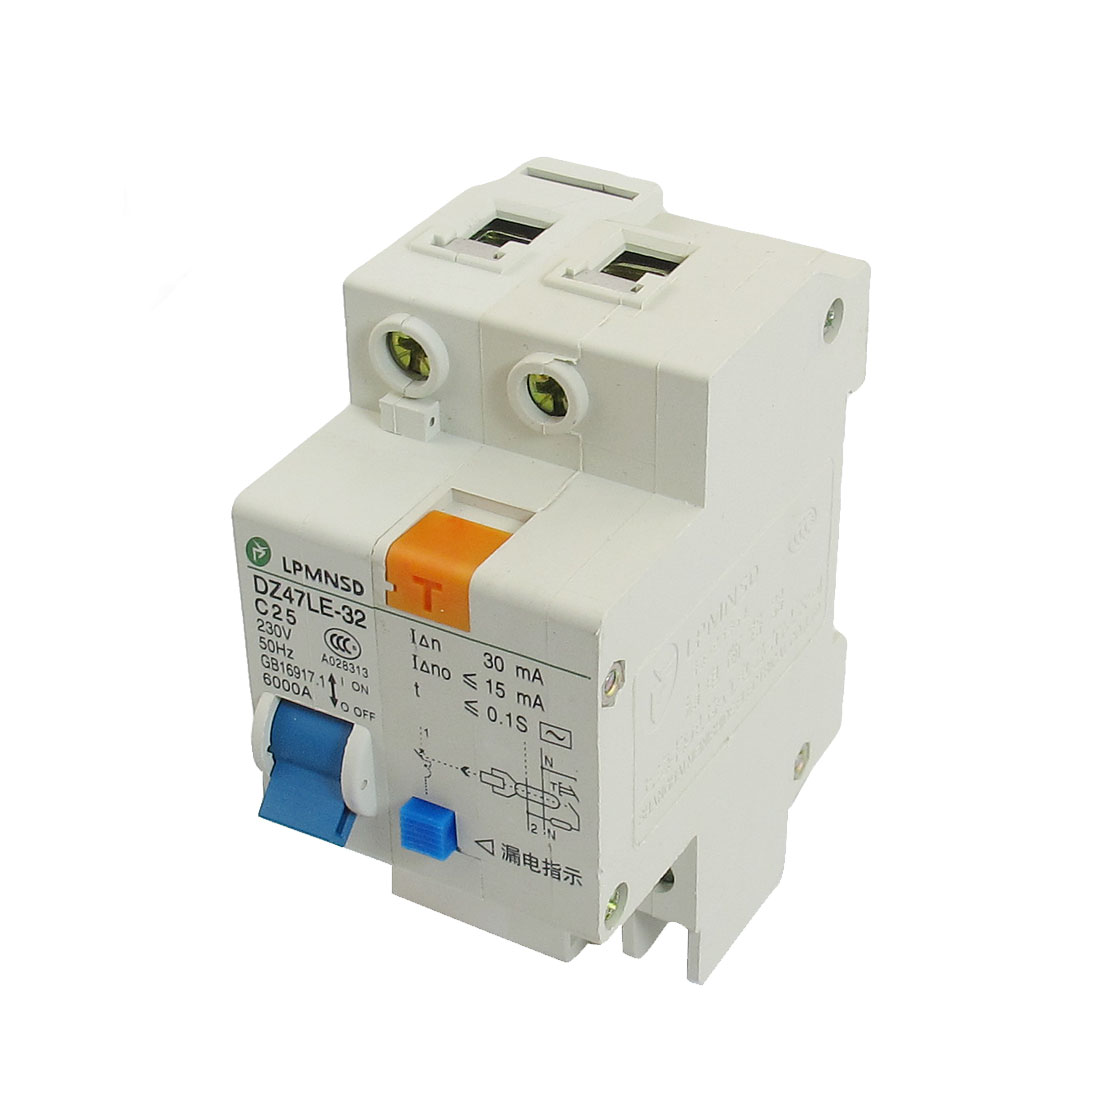 DIN Dail 1P Overload Proetction Circuit Breaker 230VAC 25A 6000A DZ47LE-32